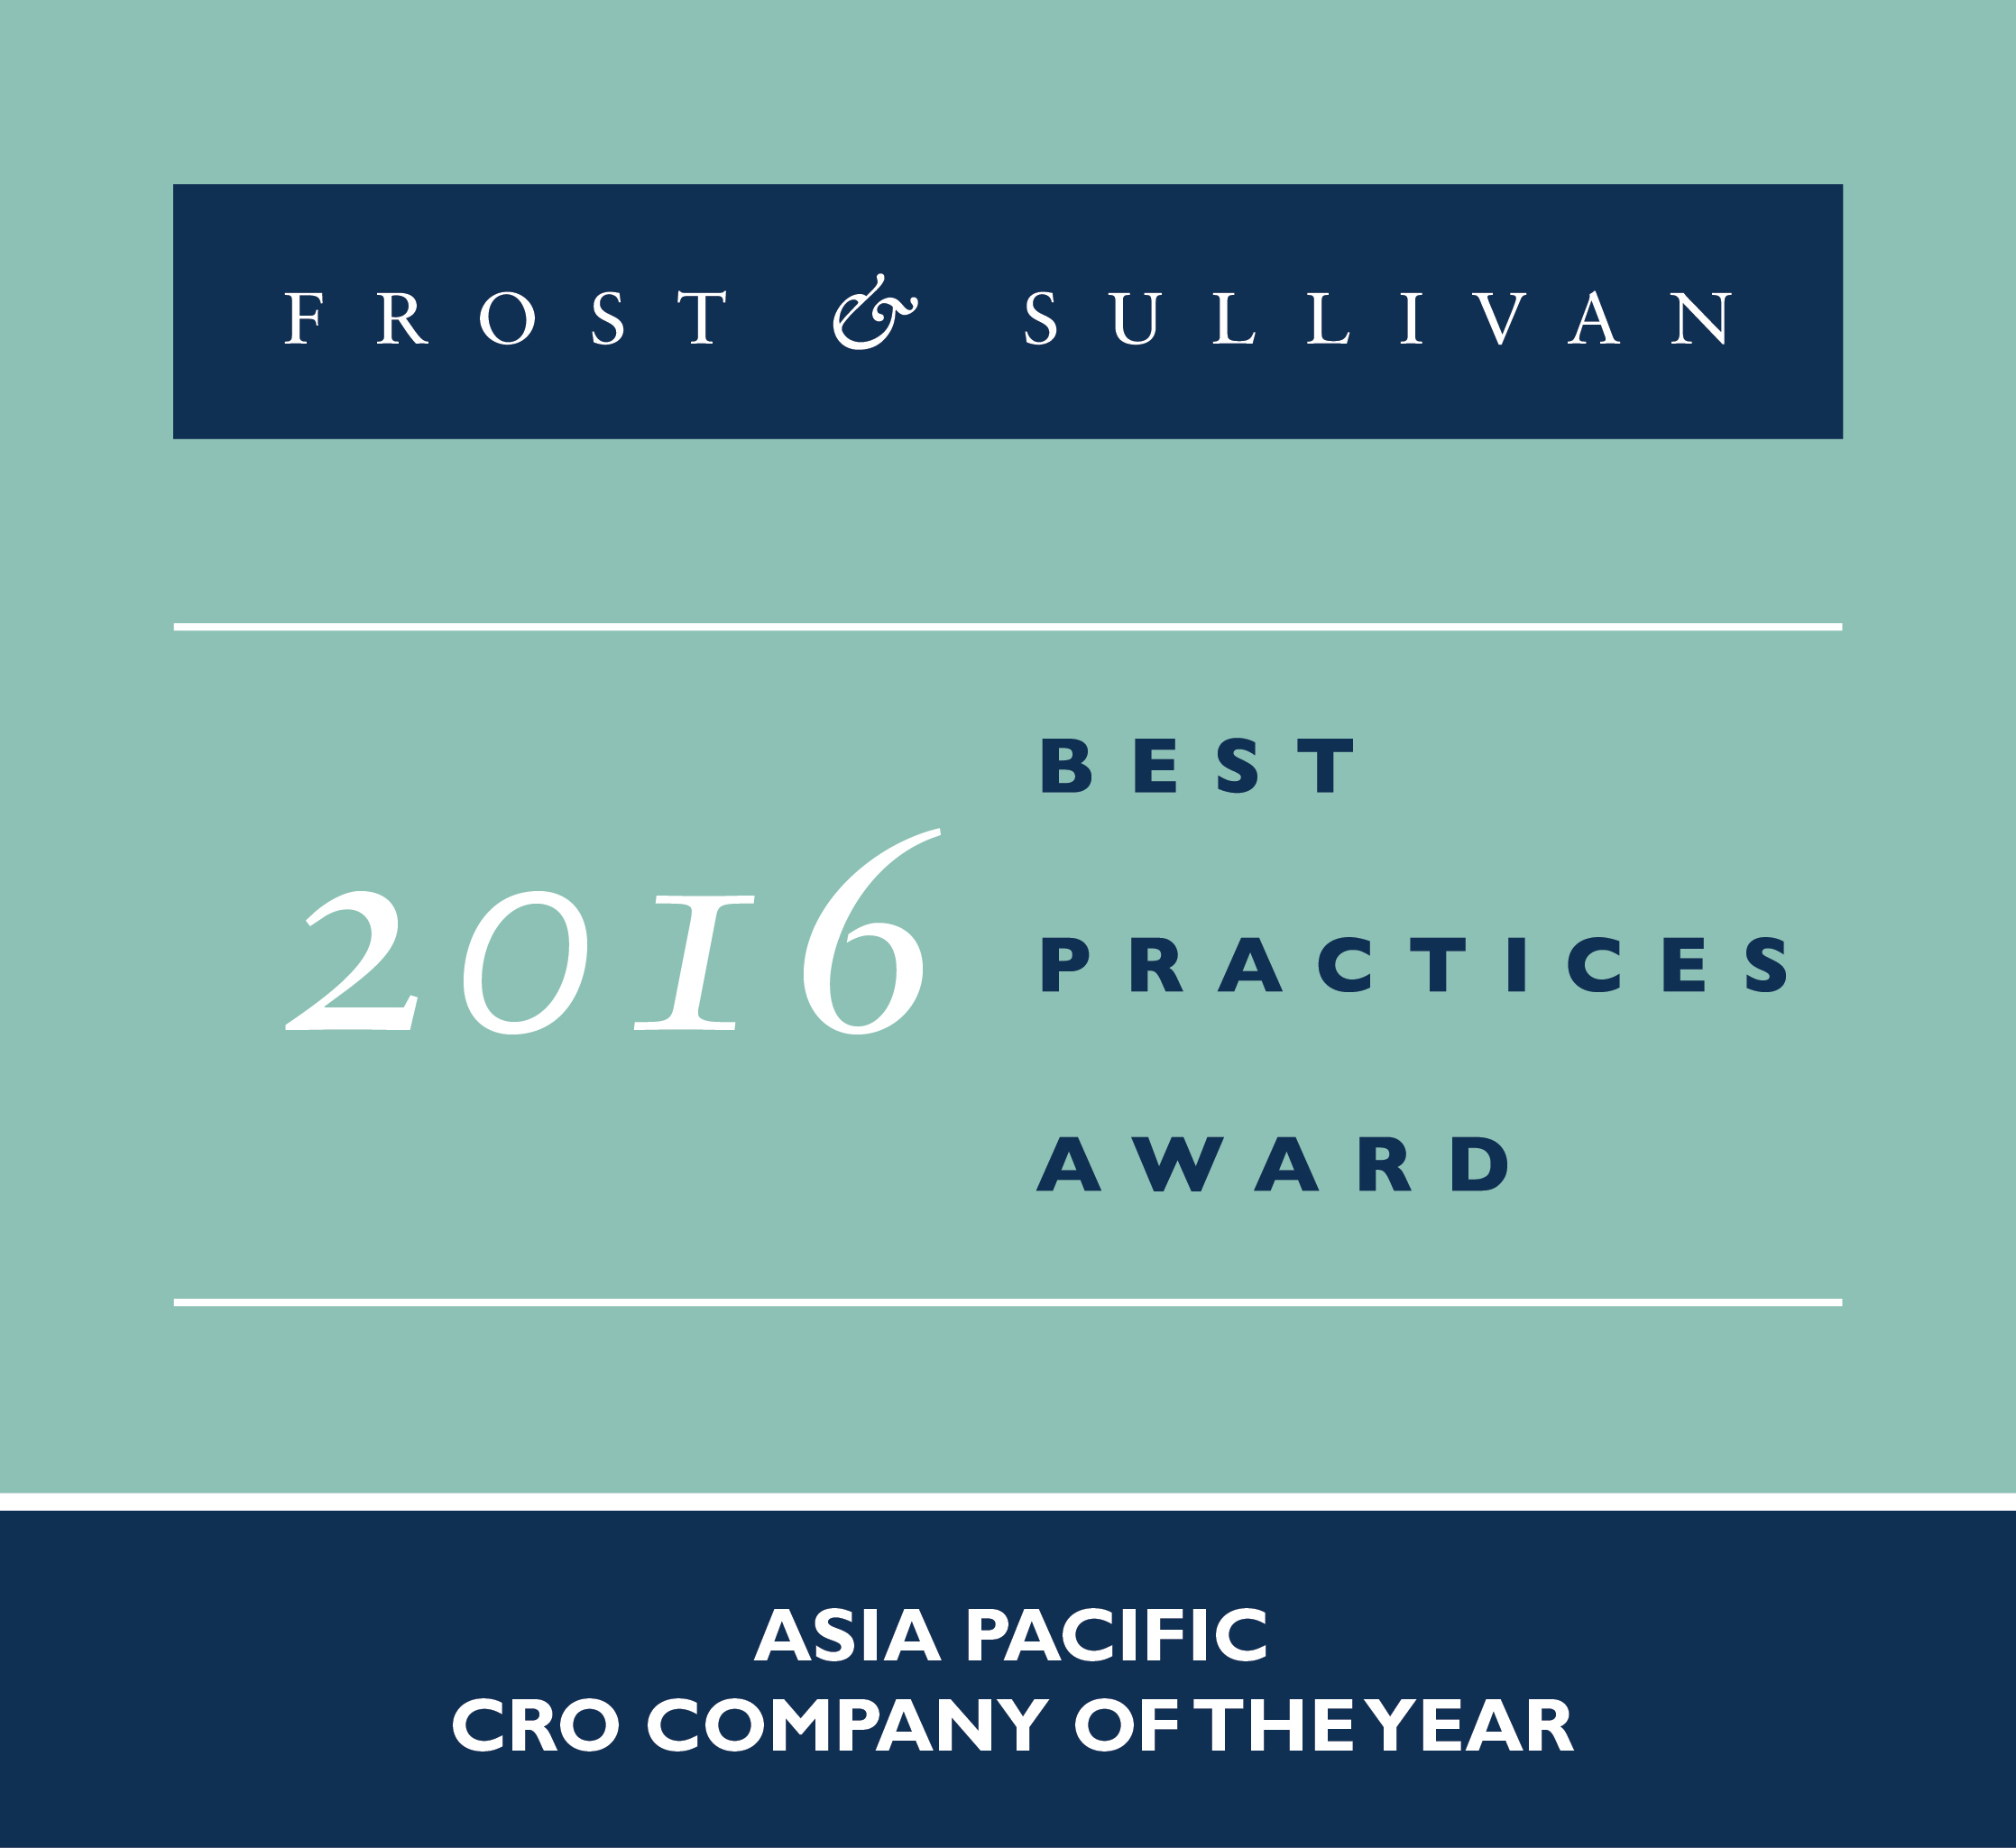 QuintilesIMS honored as 2016 Frost & Sullivan Asia Pacific CRO Company of the Year. (Photo: Business Wire)